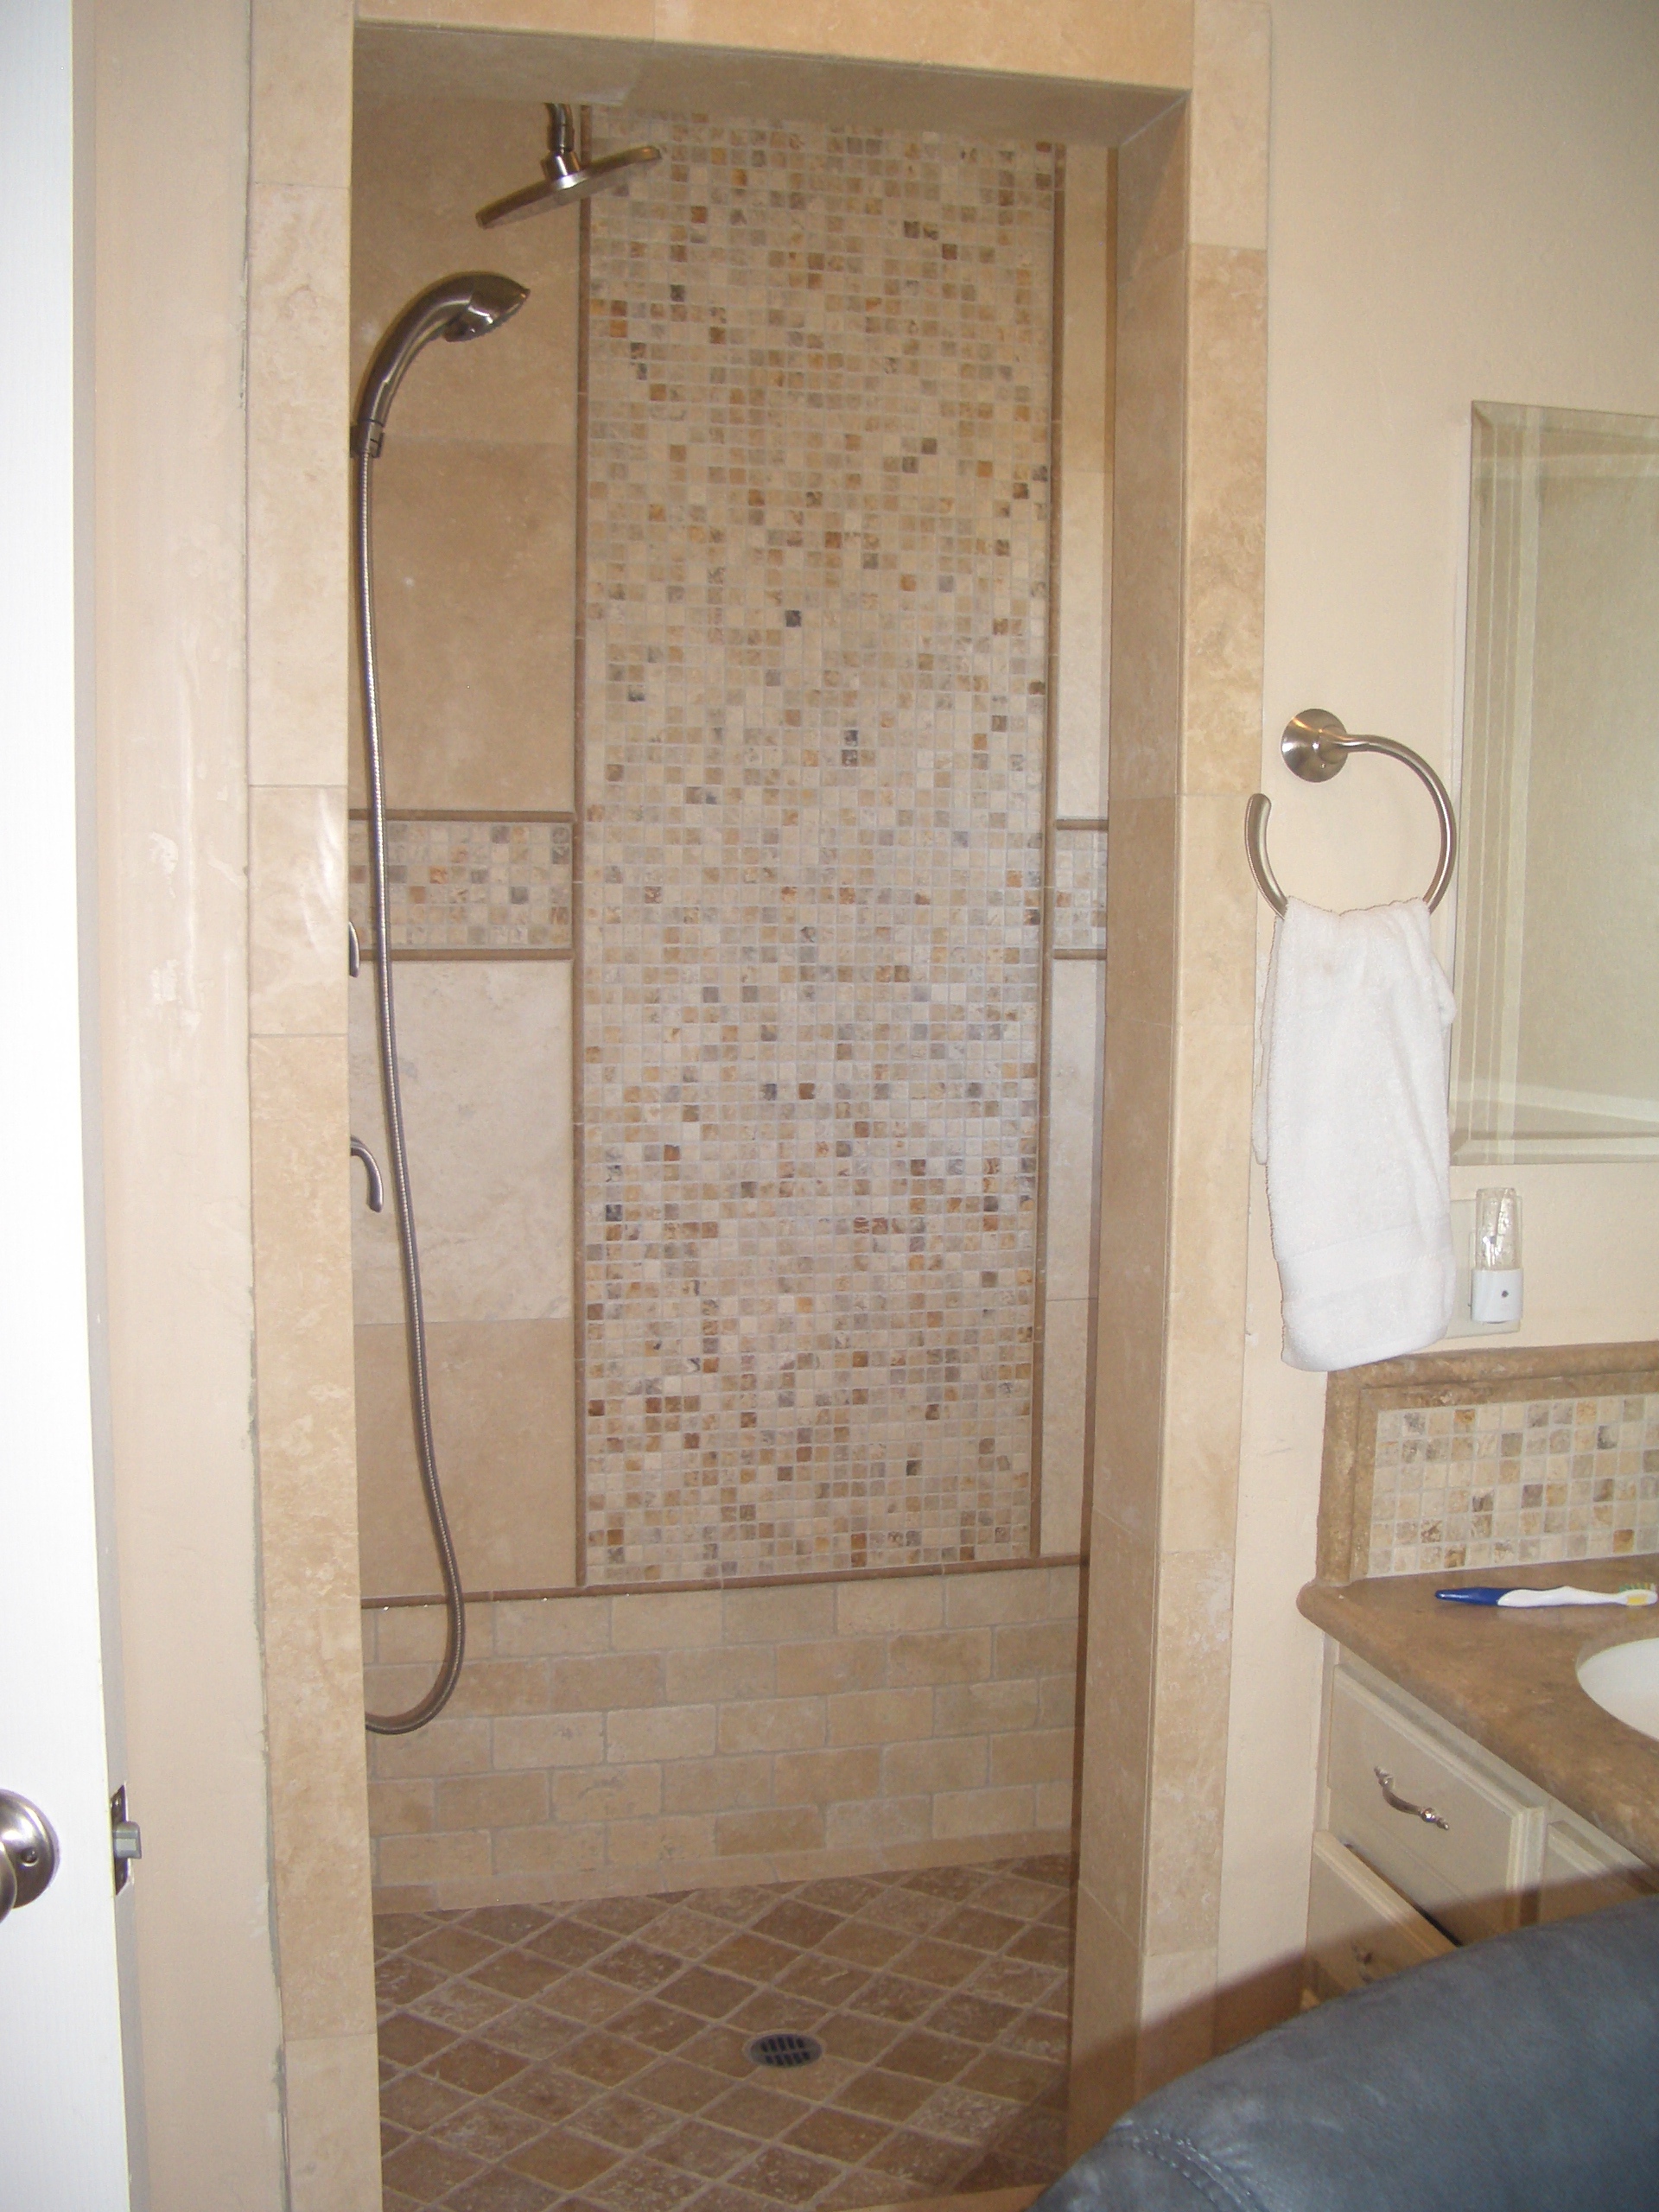 Precise flooring and showers professional installation of tile schroeder job 042 dailygadgetfo Choice Image